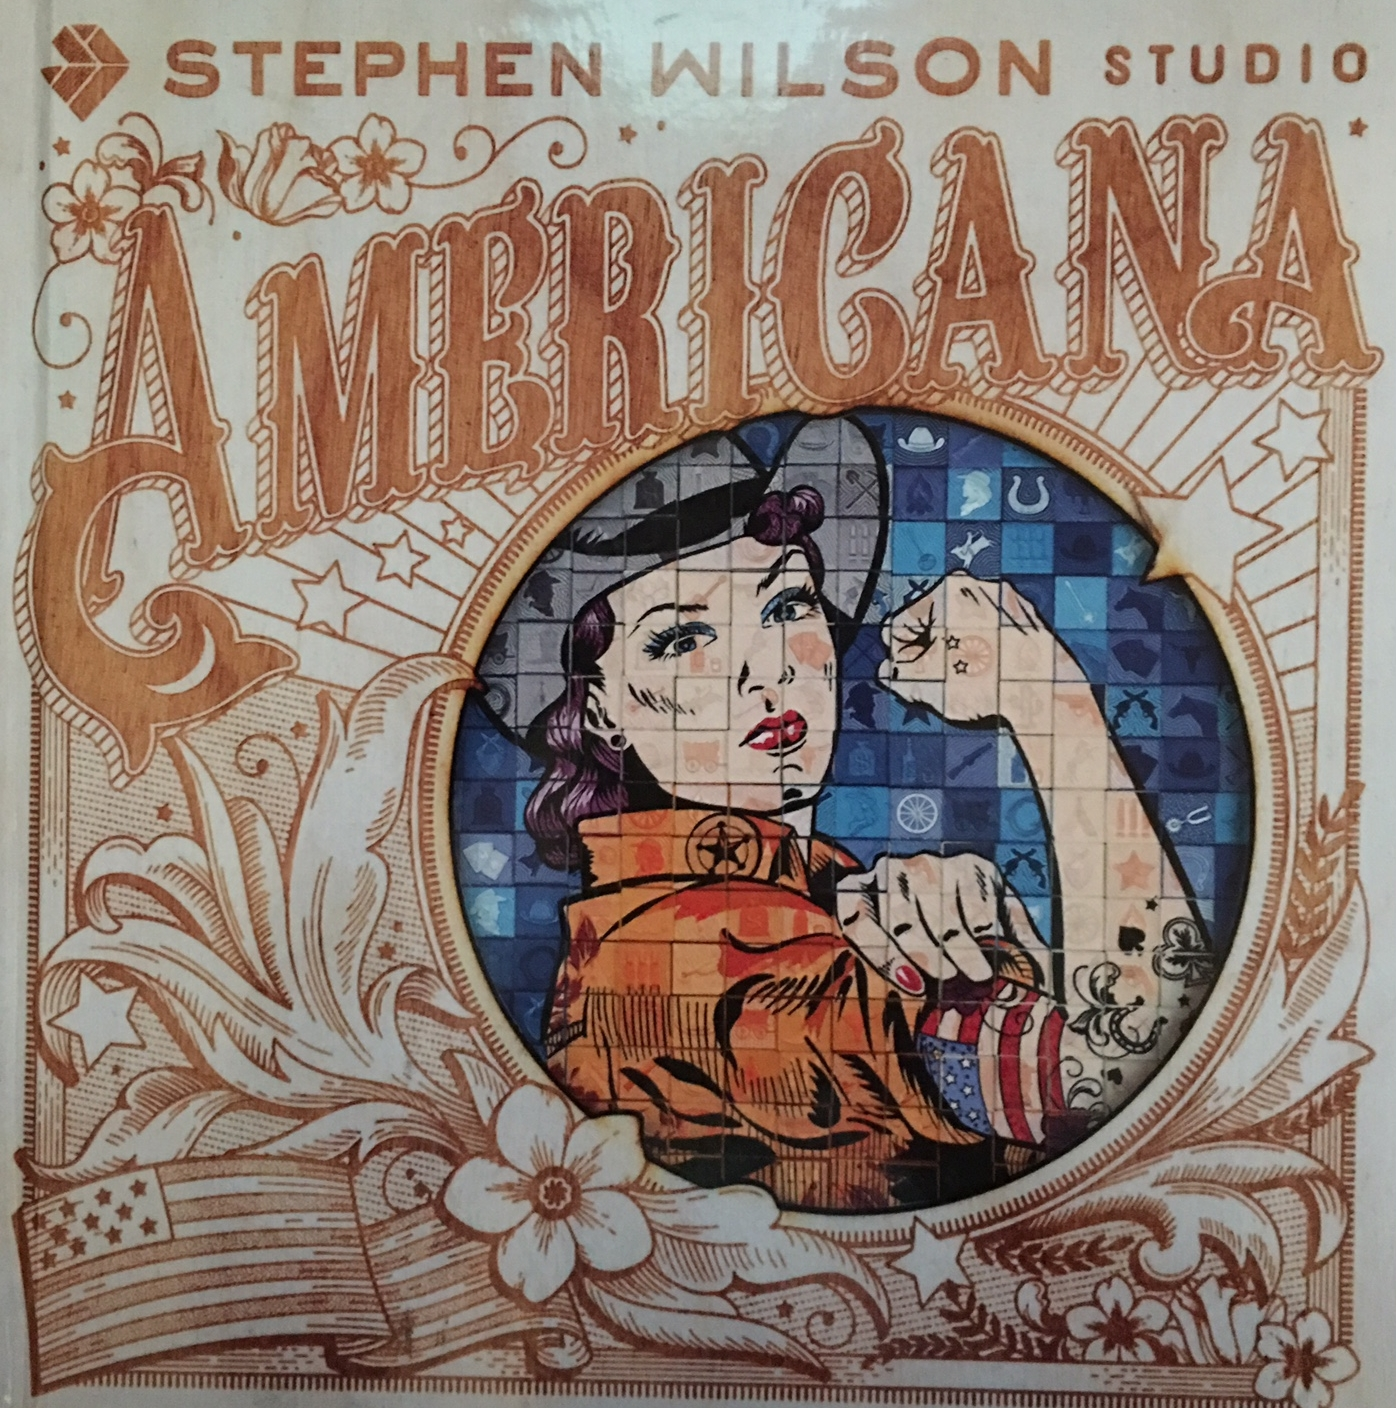 The cover of the book about the  Americana  installation features the artist's modern take on the famous Rosie the Riveter image .